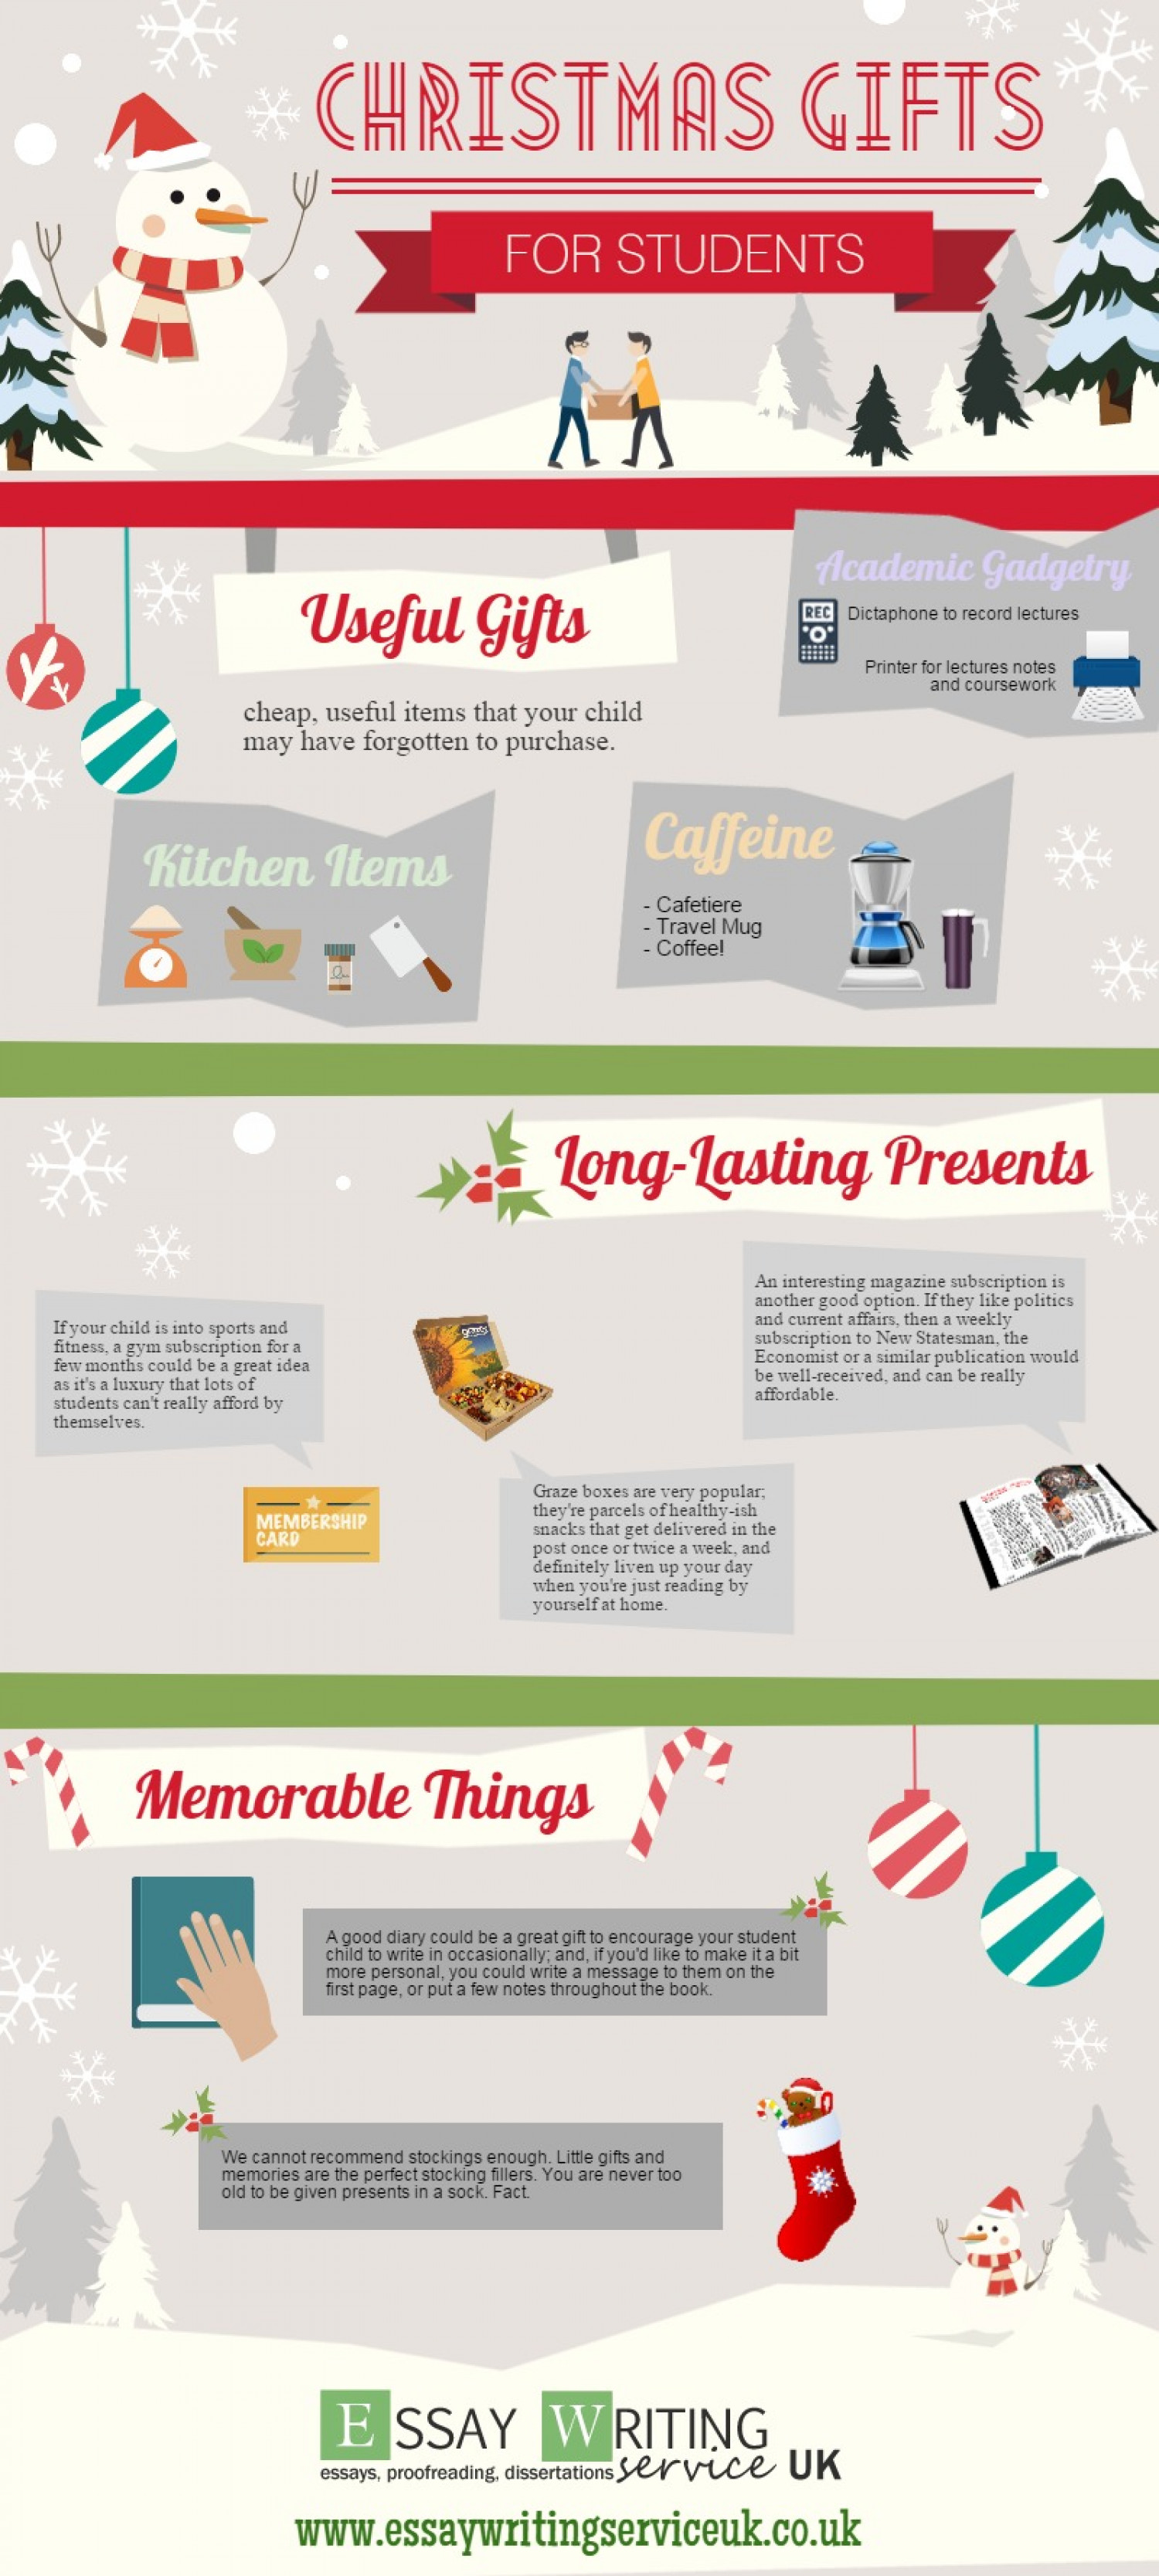 Christmas Gift Ideas For Students Infographic